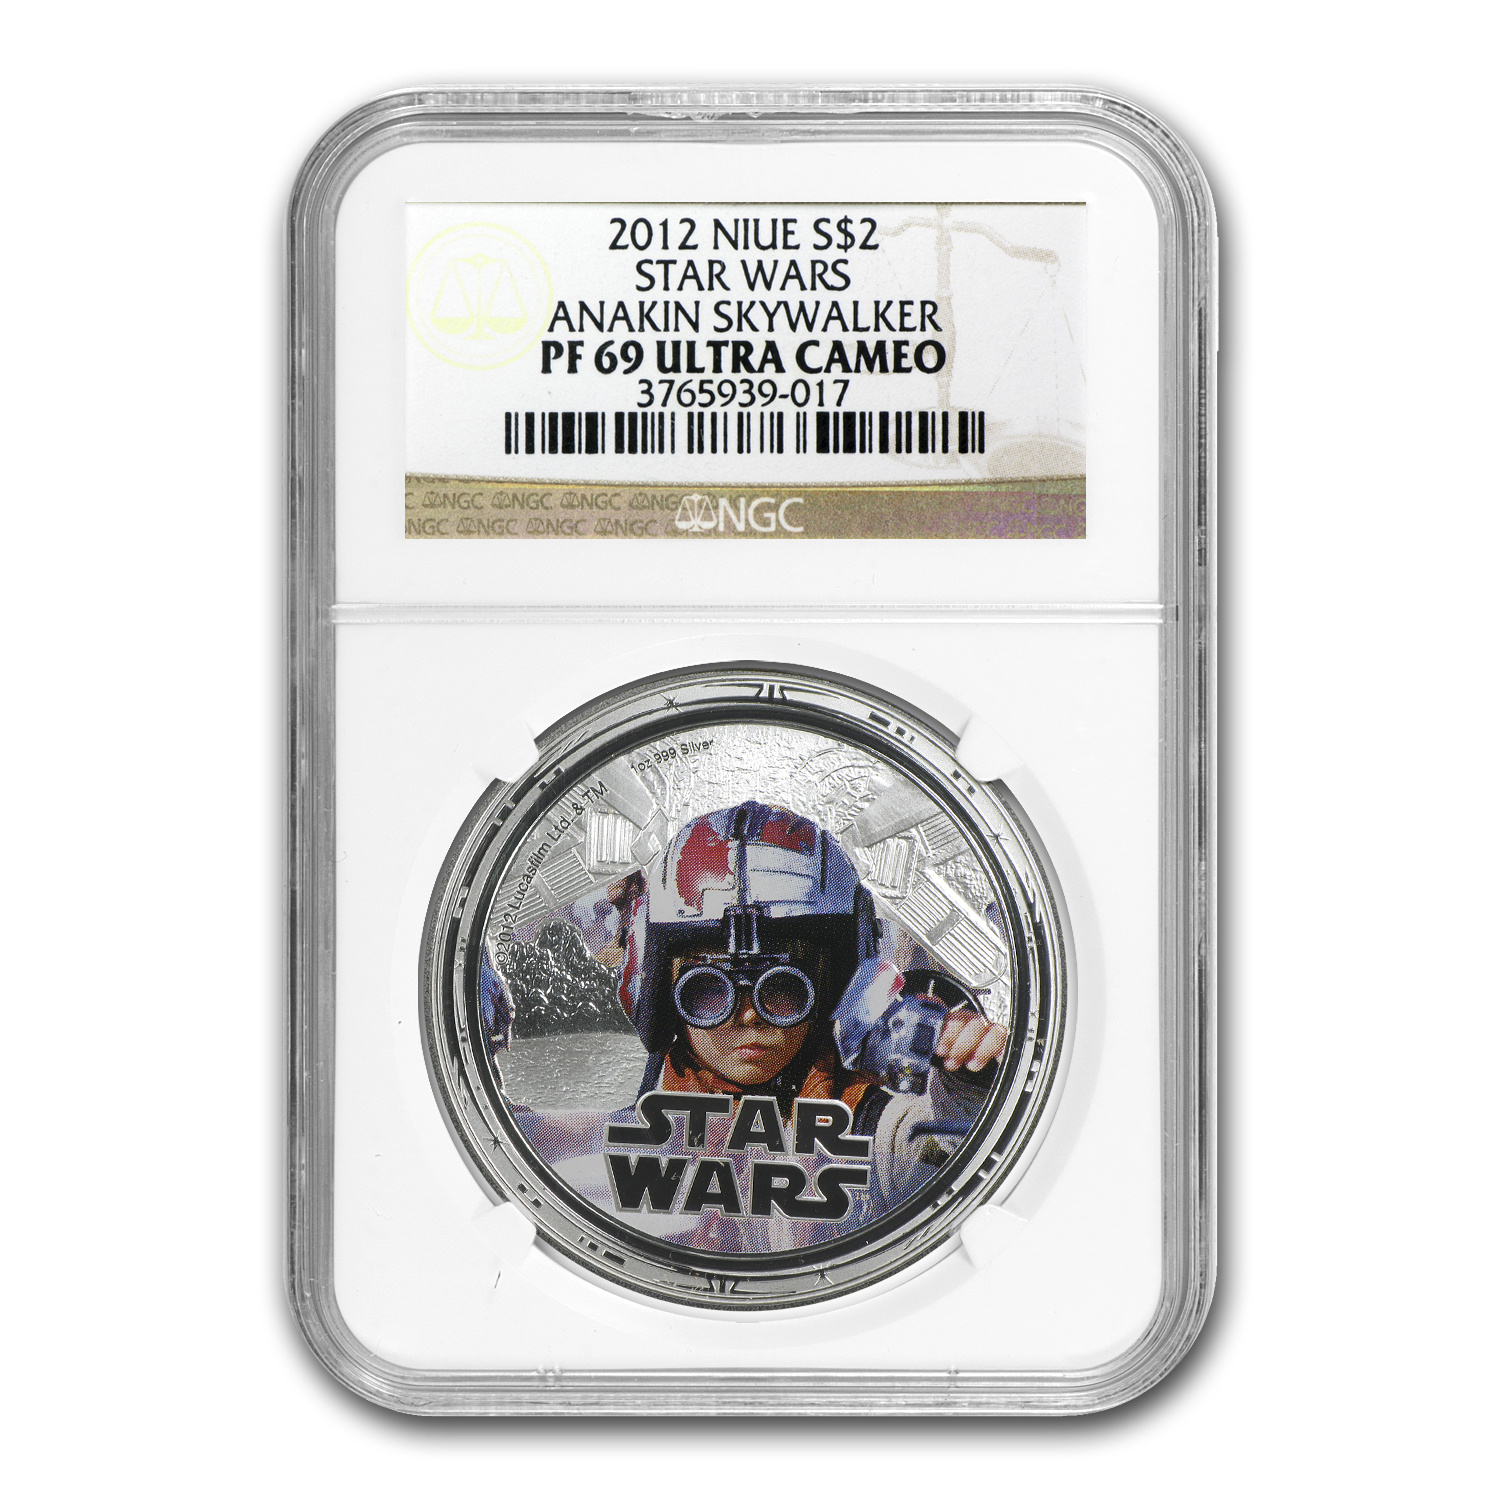 2012 1 oz Silver $2 Niue Star Wars Anakin Skywalker PF-69 NGC